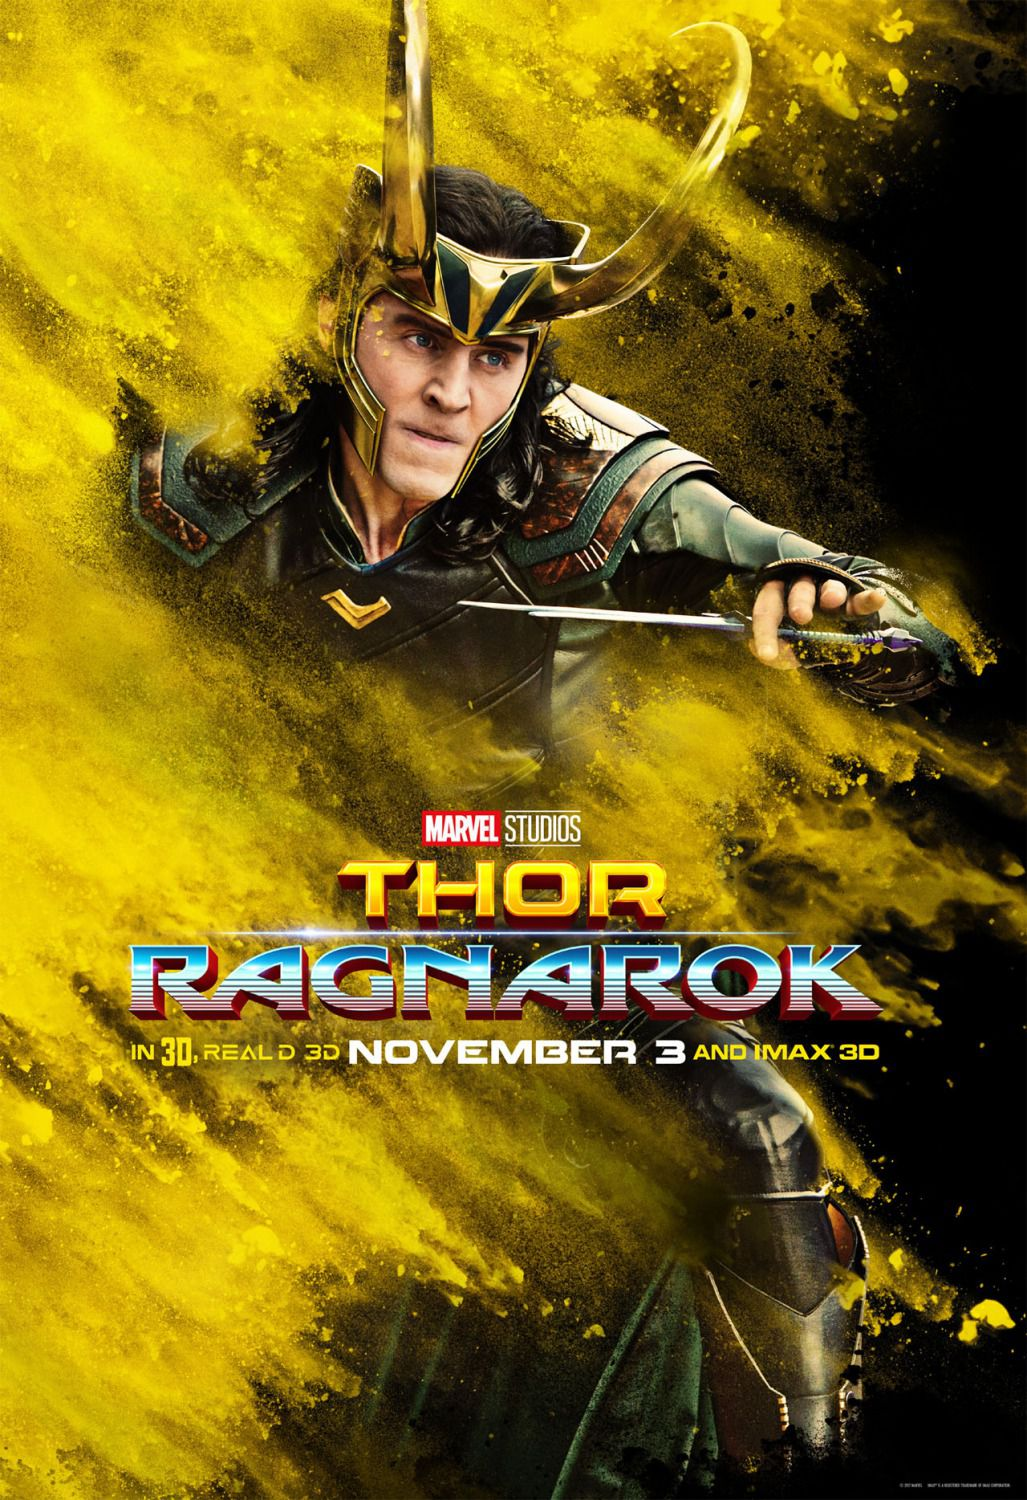 Thor Ragnarok - poster Tom Hiddleston - Loki